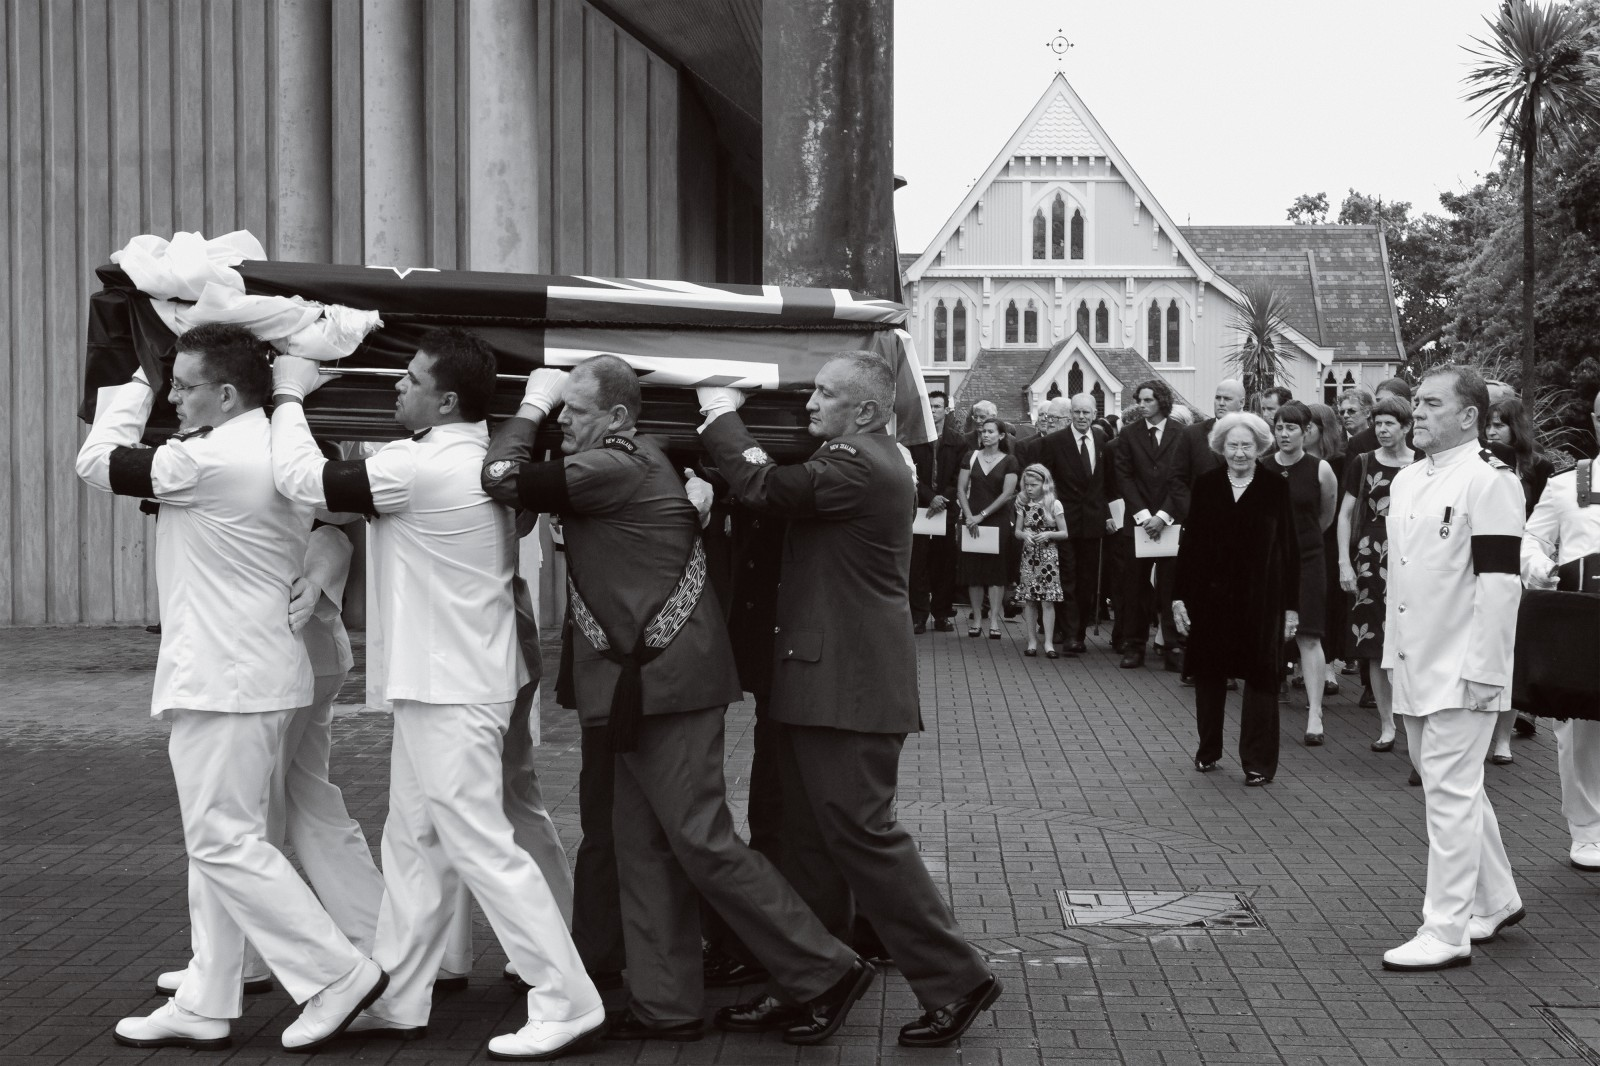 The casket was then carried by representatives of the New Zealand military to the smaller neighbouring St Mary's church, where the service was broadcast on television, radio and on large public screens throughout the country. Hundreds of thousands of New Zealanders stopped to watch the service live, as did people in Antarctica and Nepal.